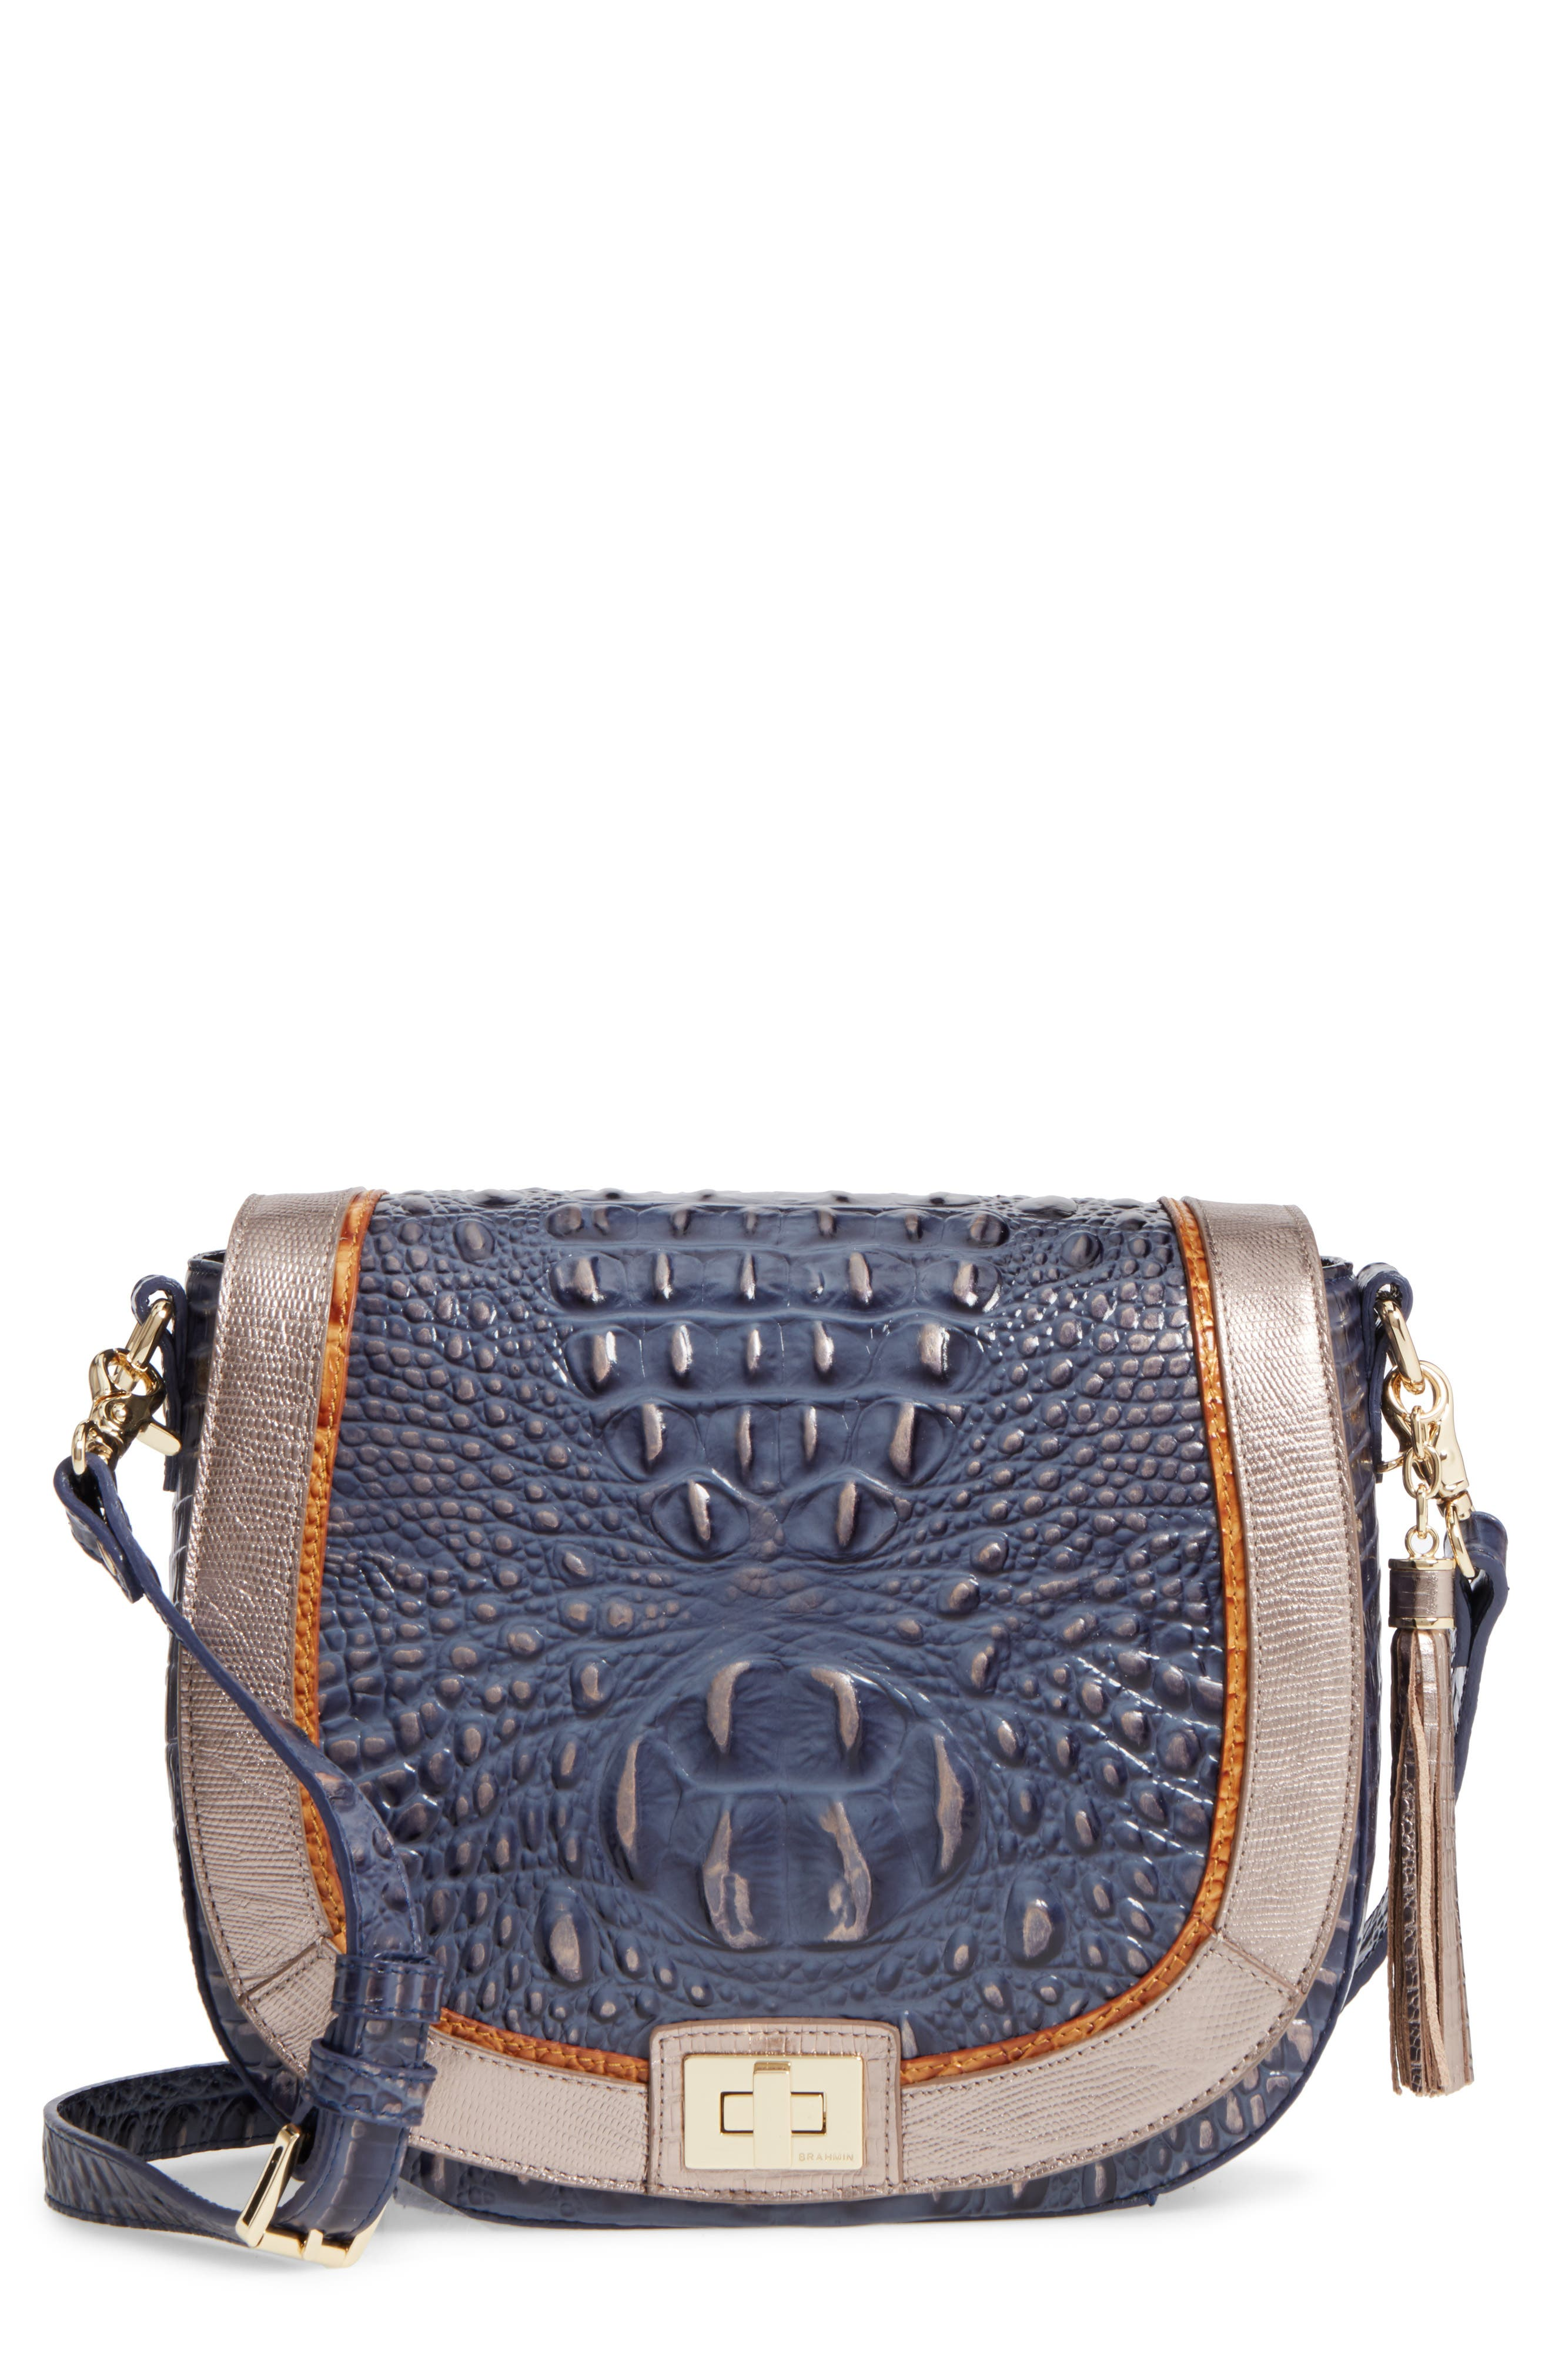 BRAHMIN Andesite Lucca Sonny Leather Crossbody Bag